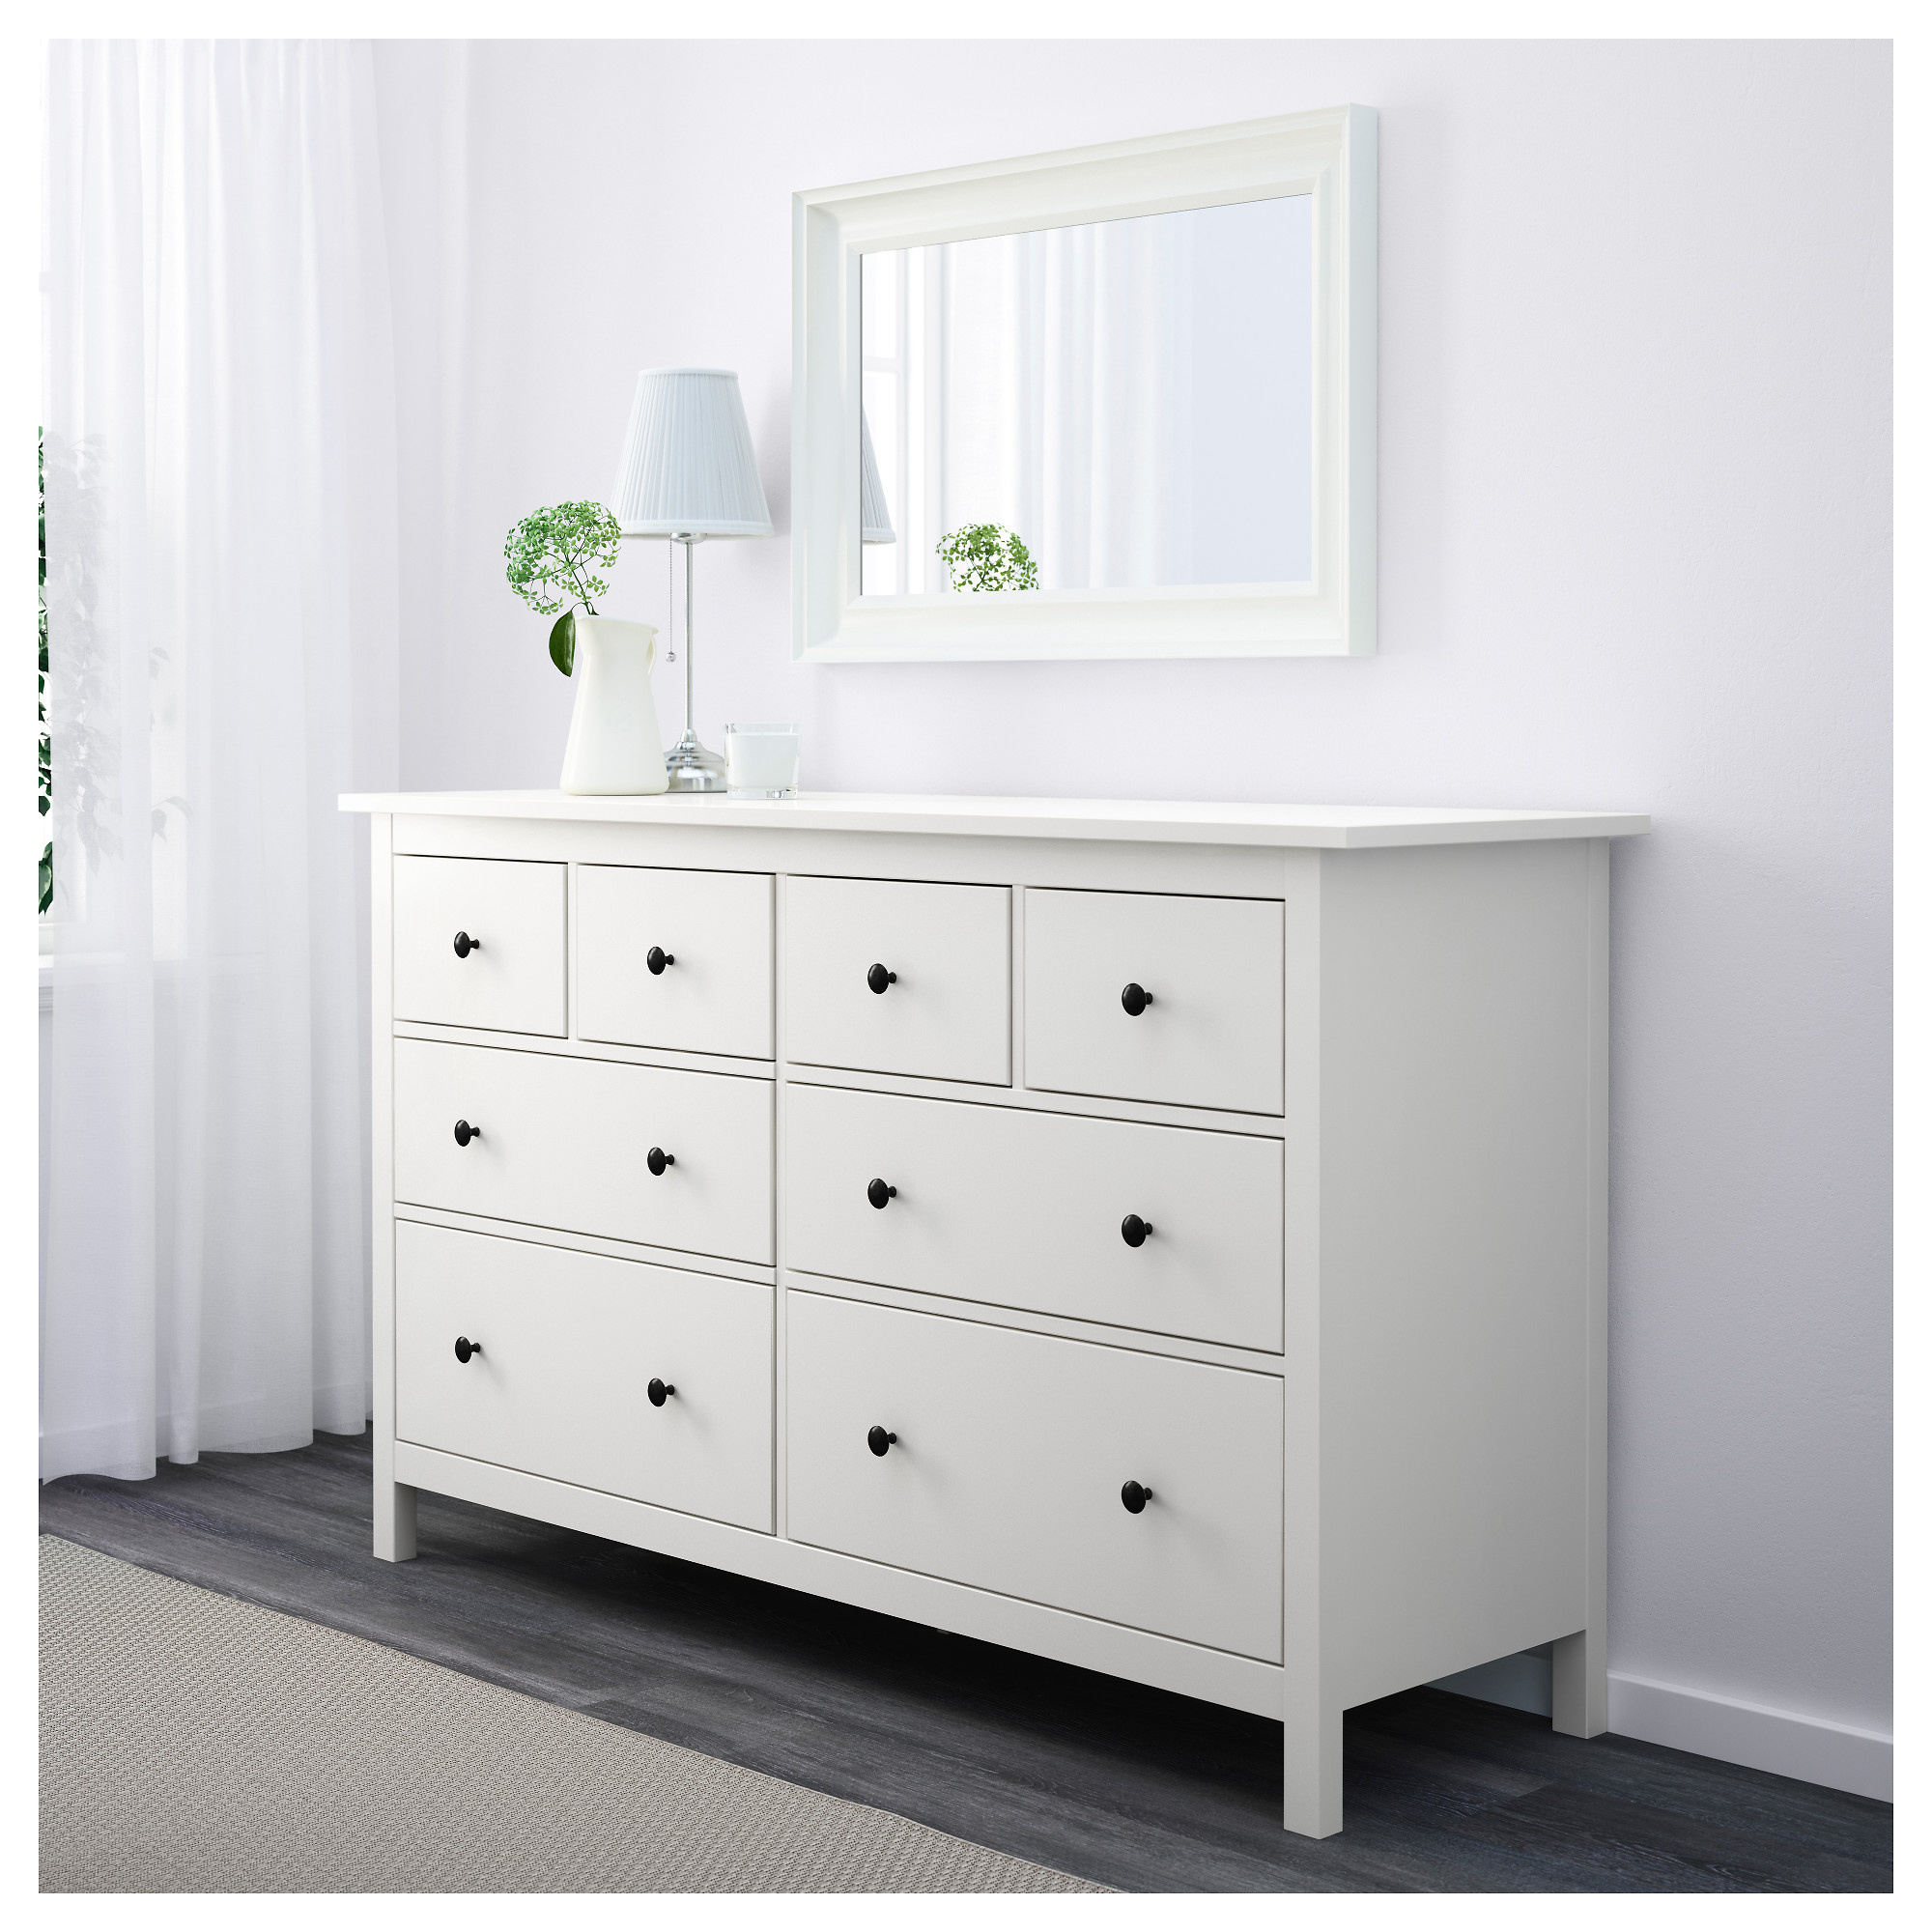 Hemnes 8 drawer dresser white 63x37 3 4 ikea